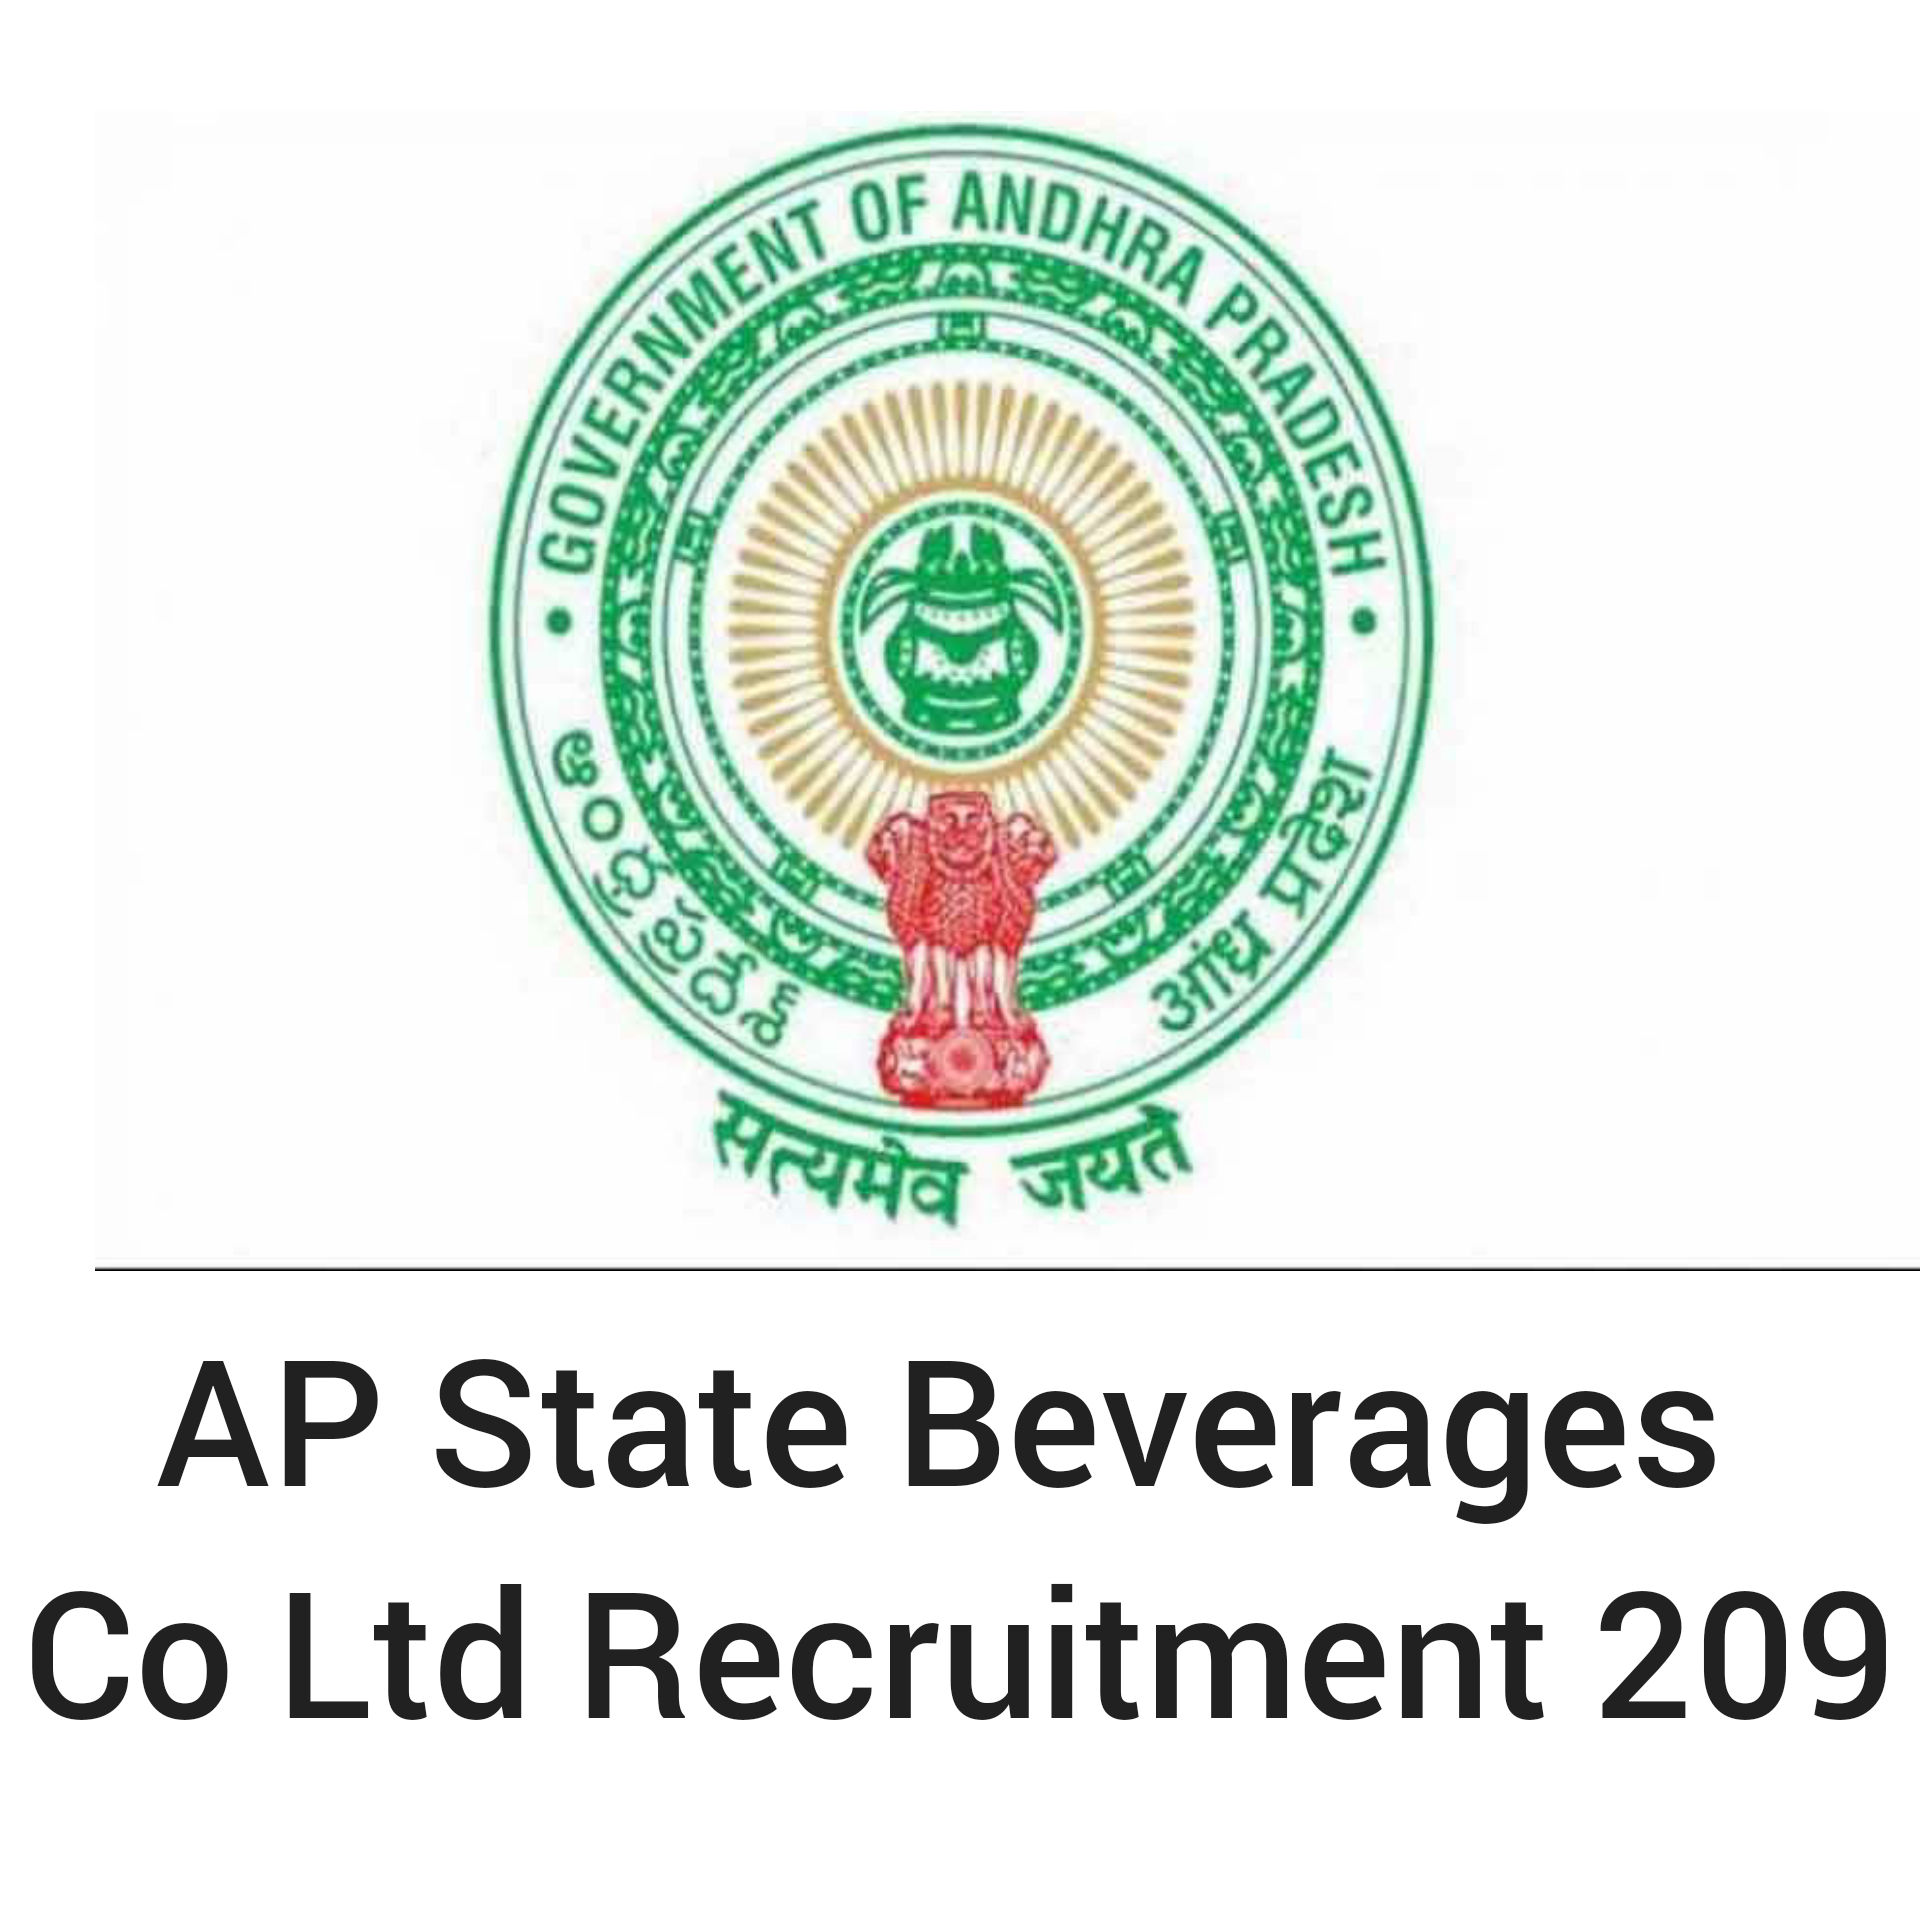 APSBCL Sales Supervisor Recruitment 2019 | Visakhapatnam | Chittoor | Guntur | Download Notification PDF